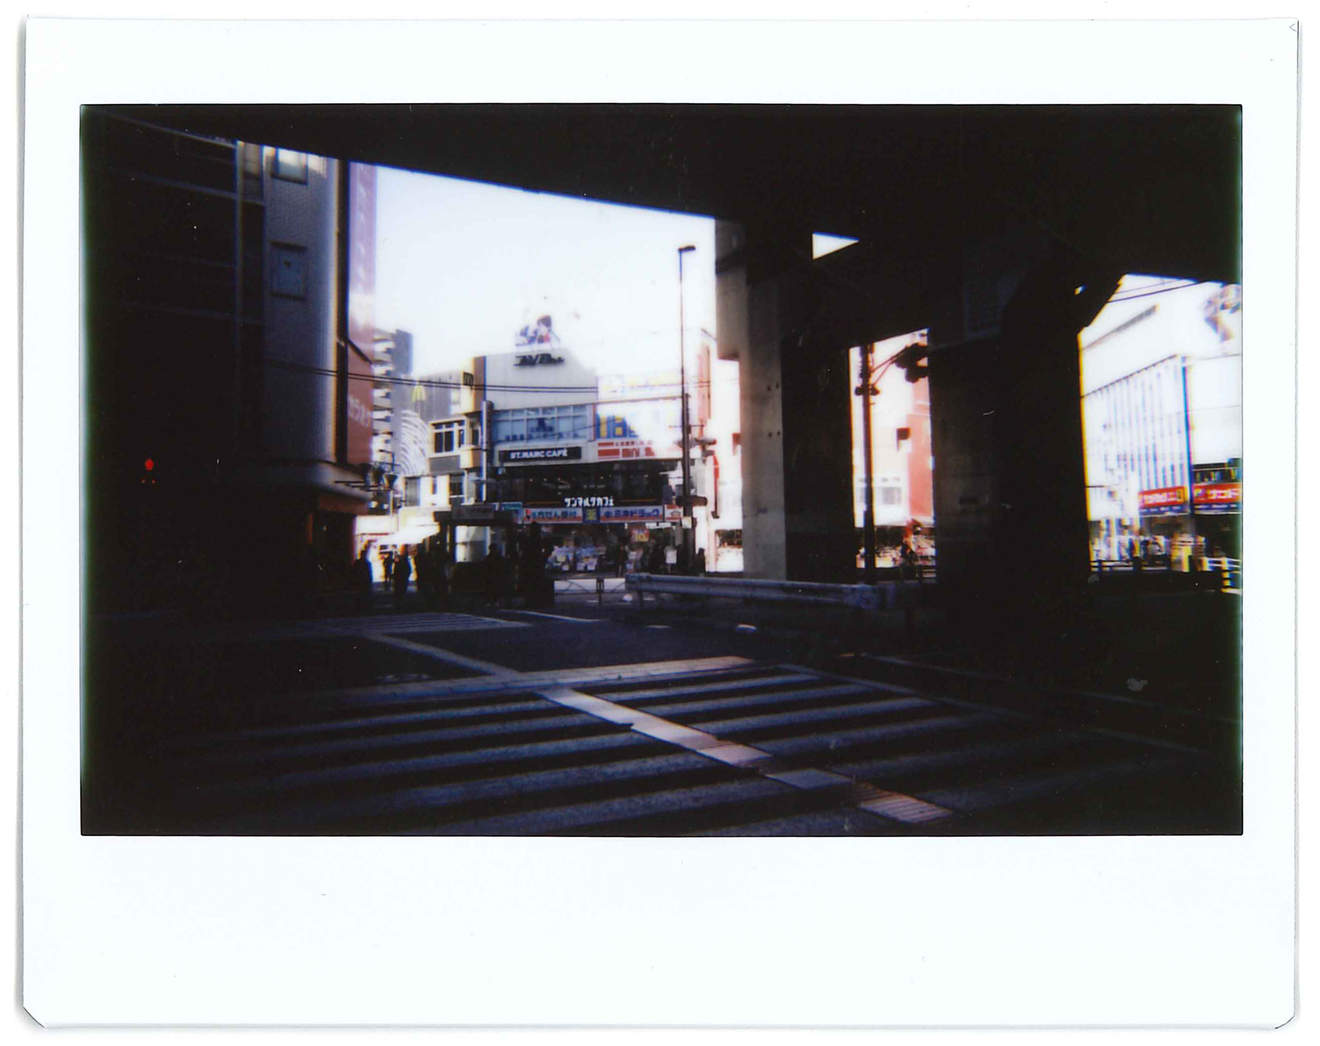 "Instant photo for Day 70 of ""A Year in an Instant"" by Nuno Coelho Santos"